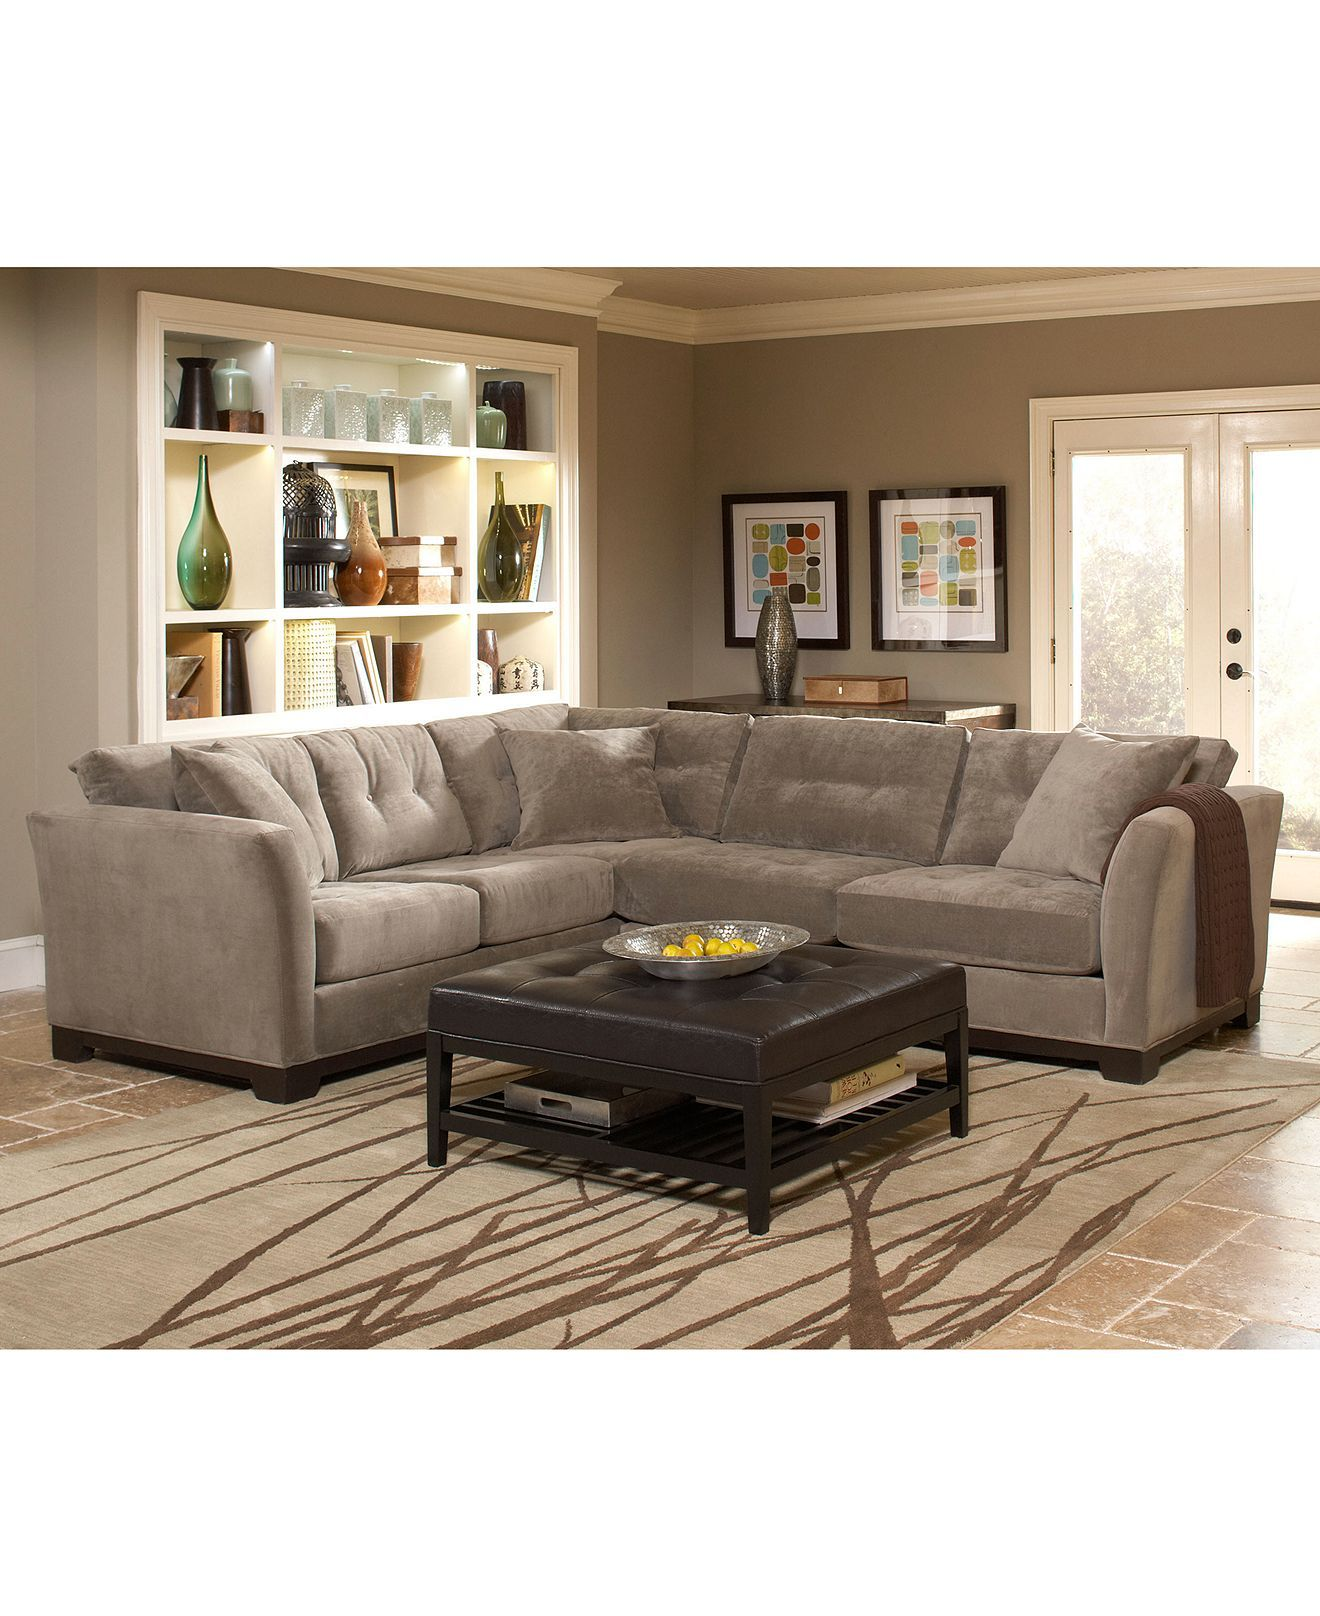 macy s elliot sofa full beds closeout fabric sectional collection created for